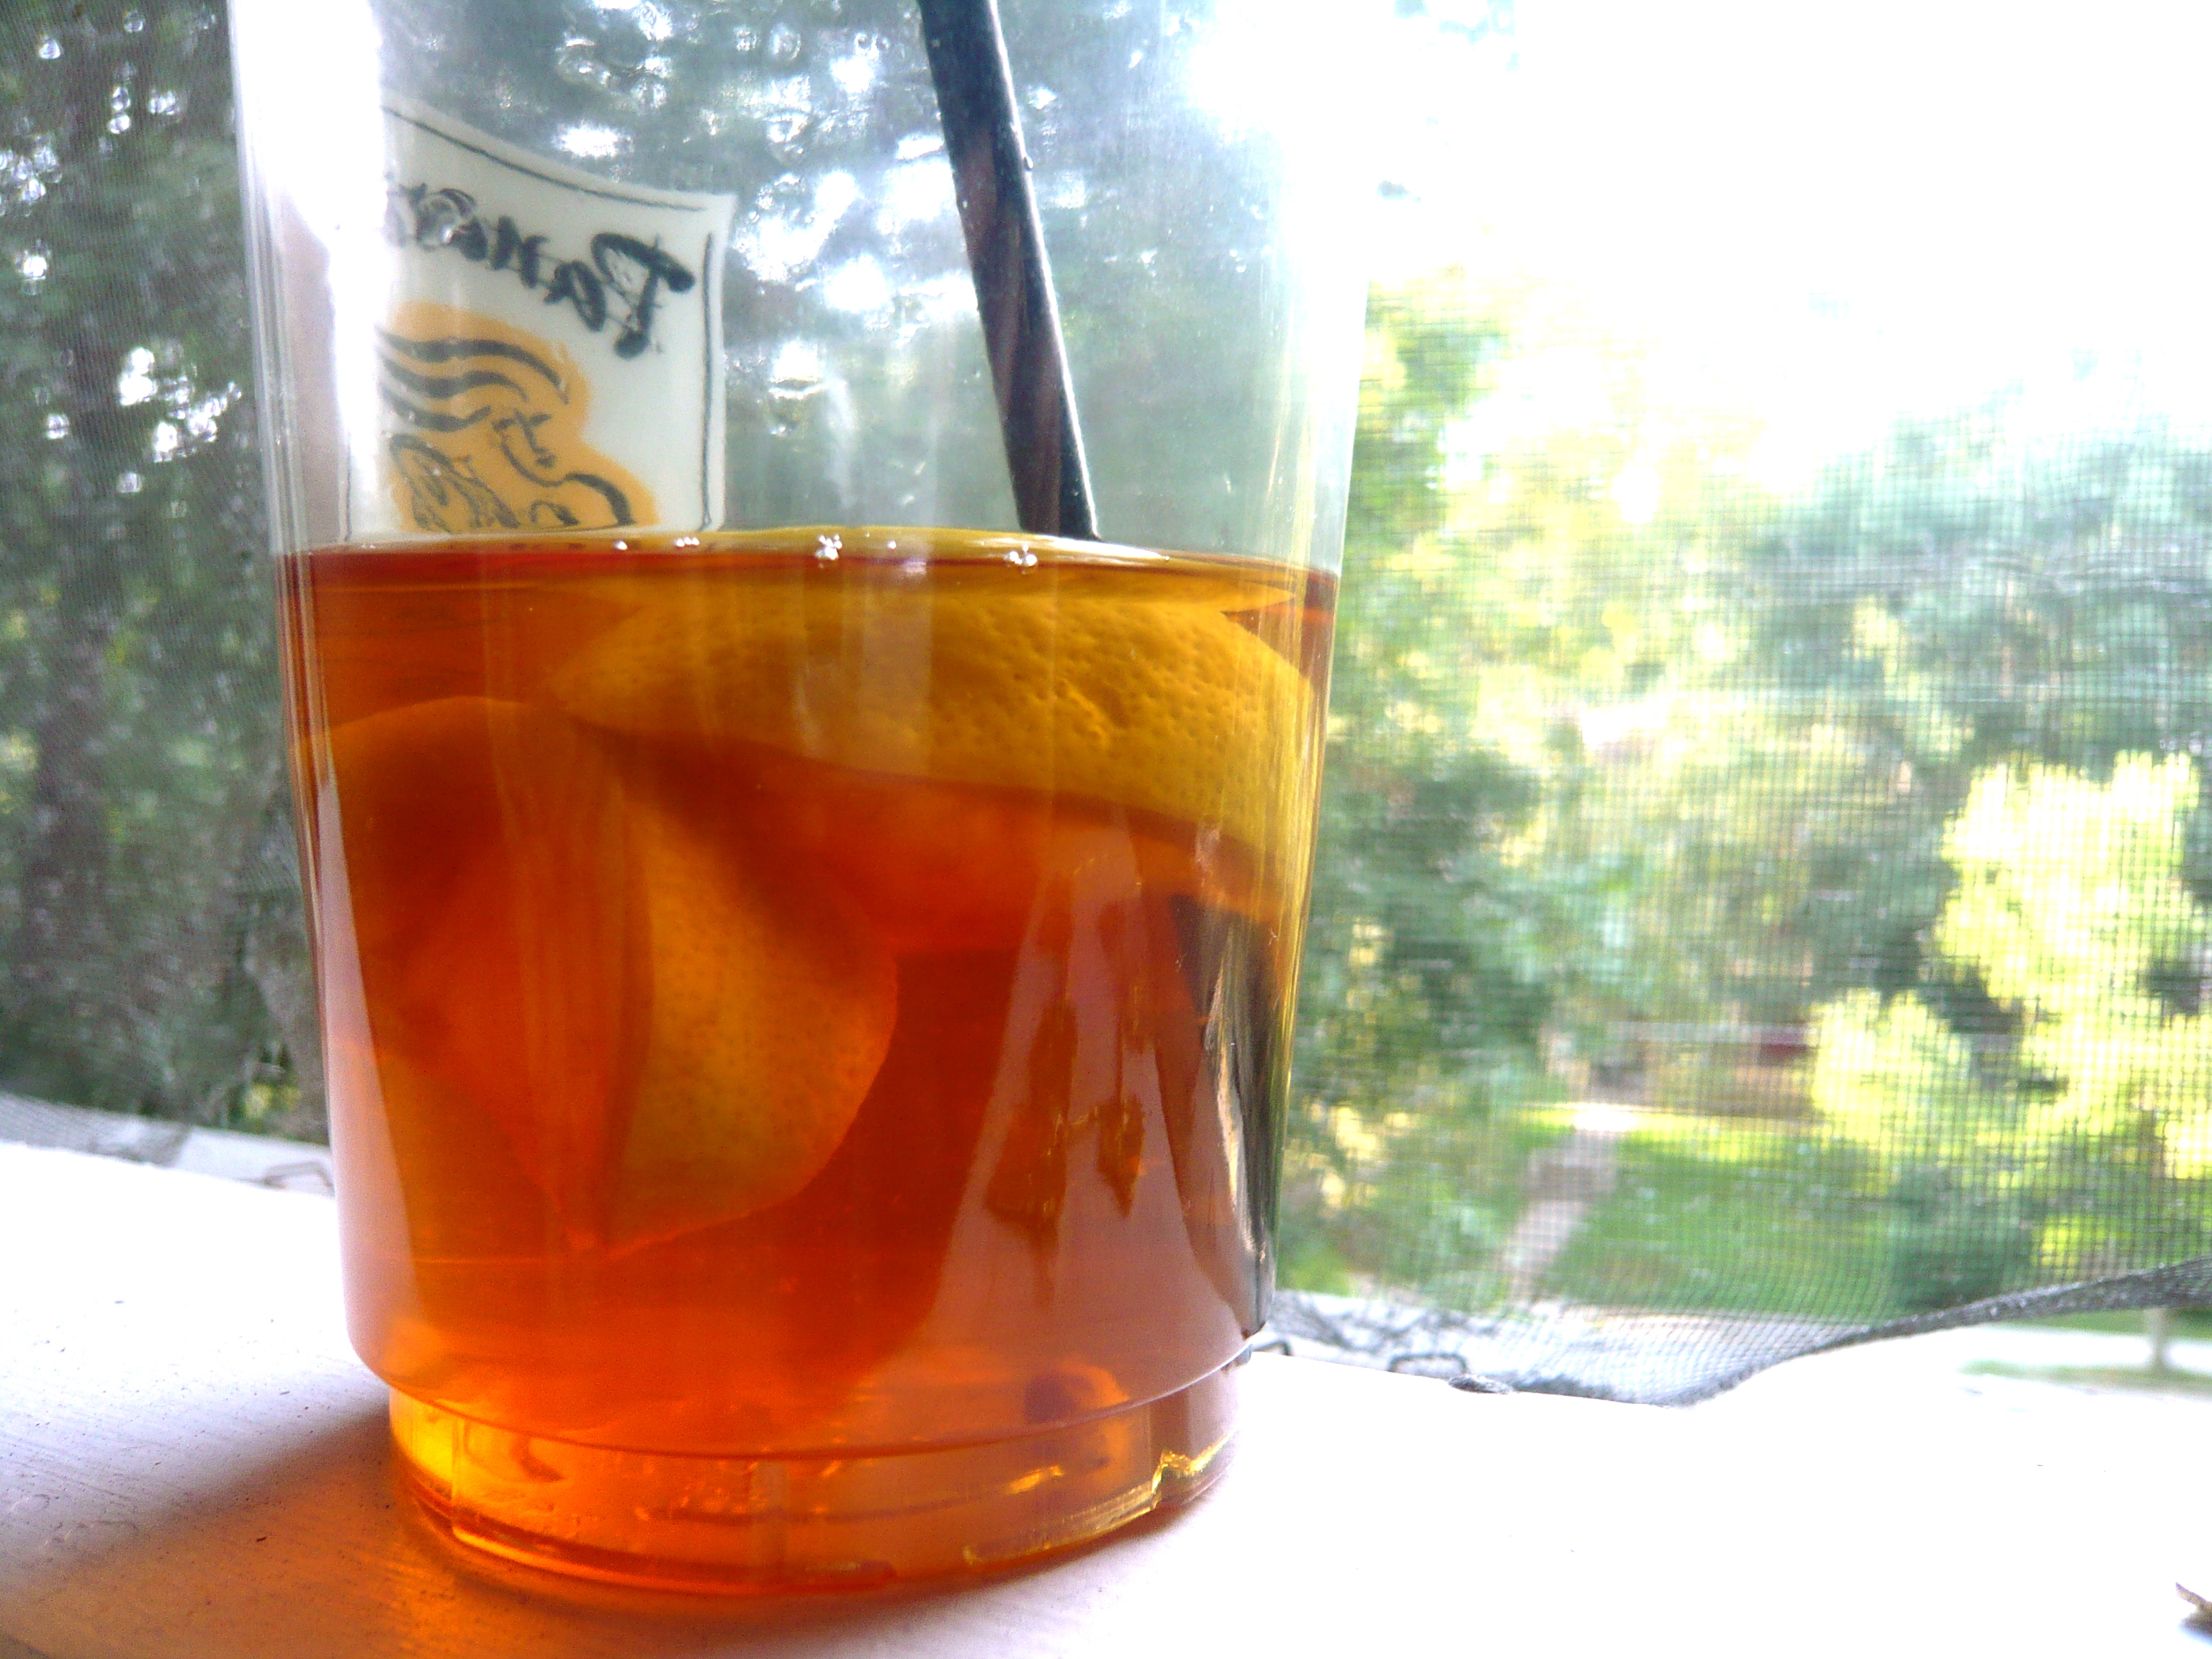 iced tea is perfect when the temperature hits 90.